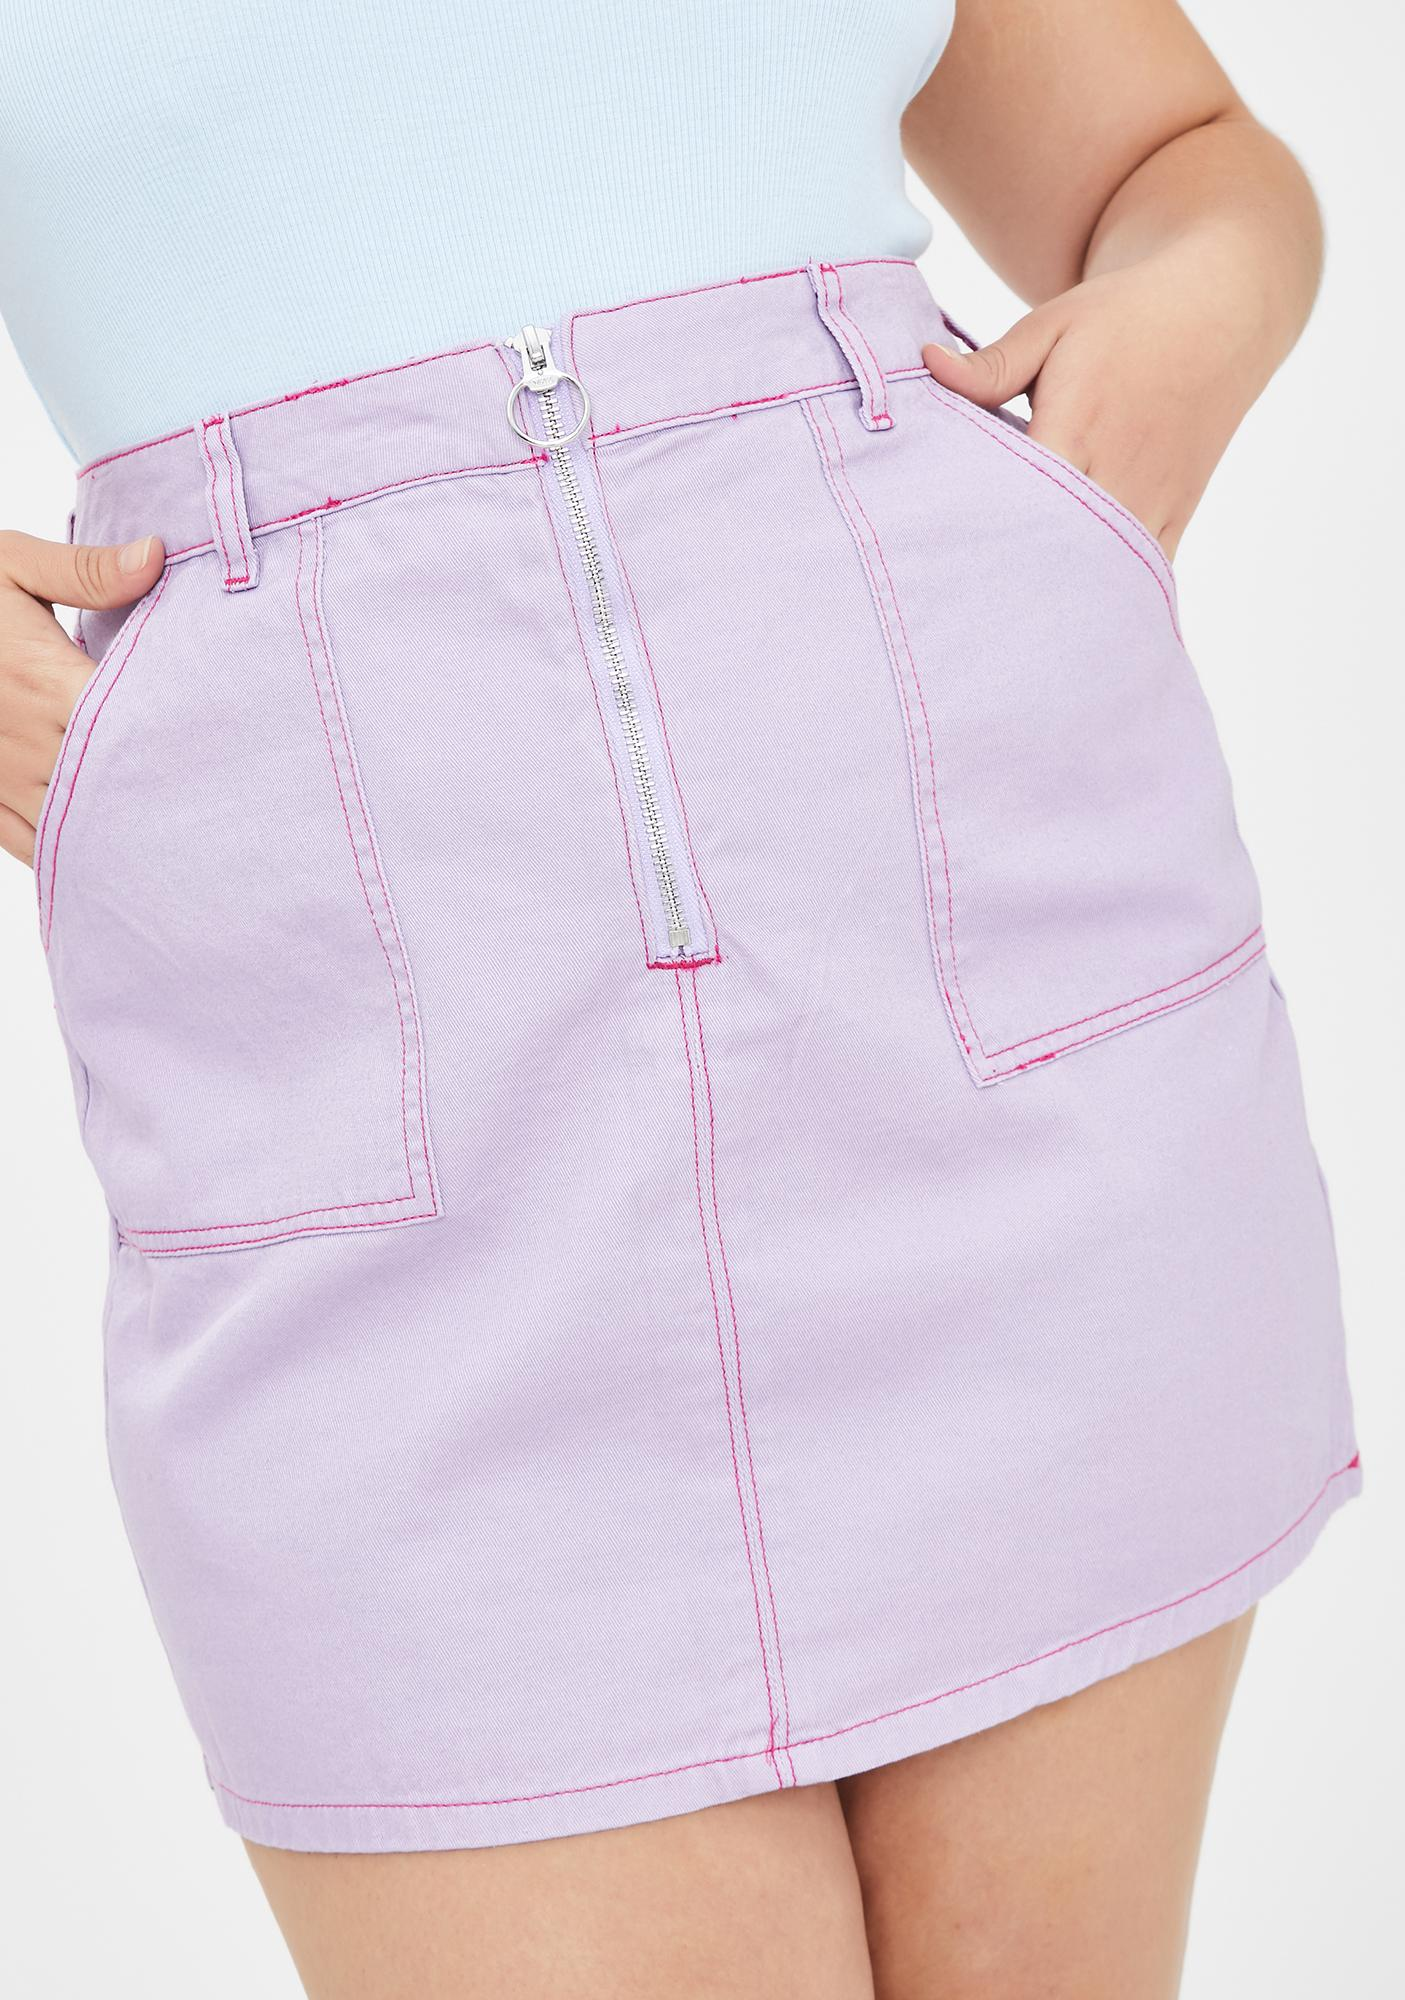 Bb Contrast Stitch Cigarette Skirt by Lazy Oaf